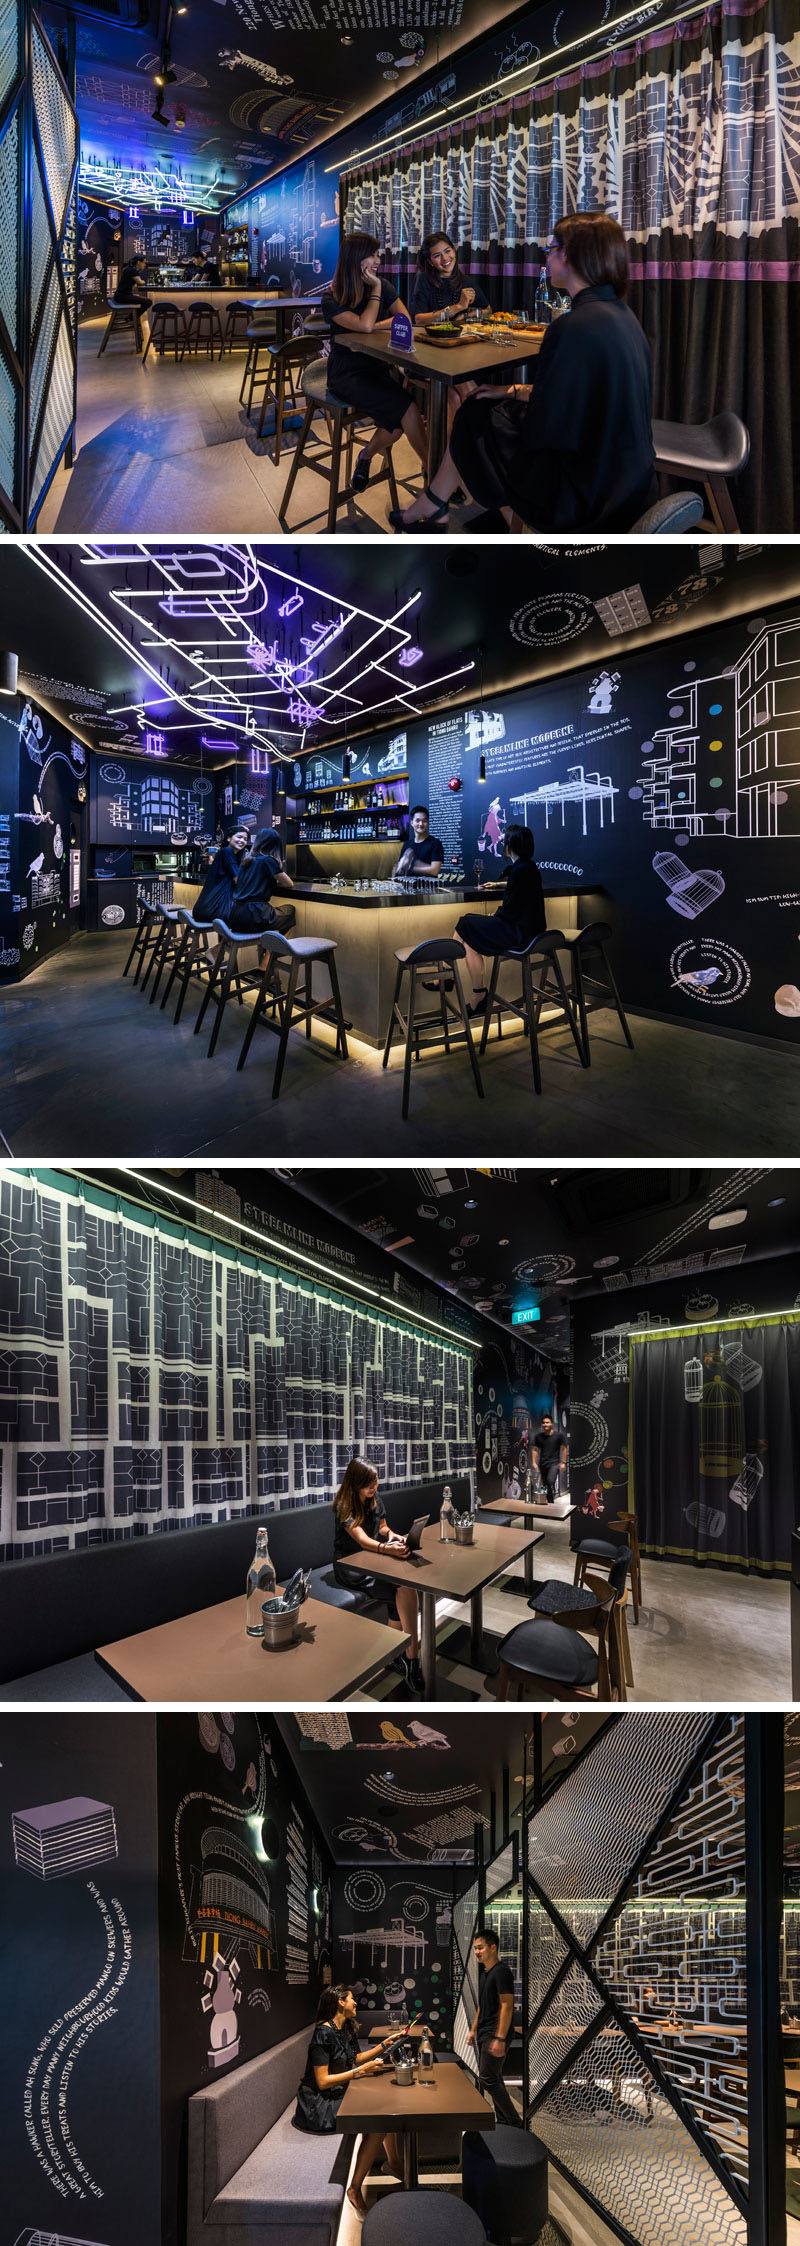 The COO Hostel in Singapore has a bistro and bar, as well as a social app to meet other guests.